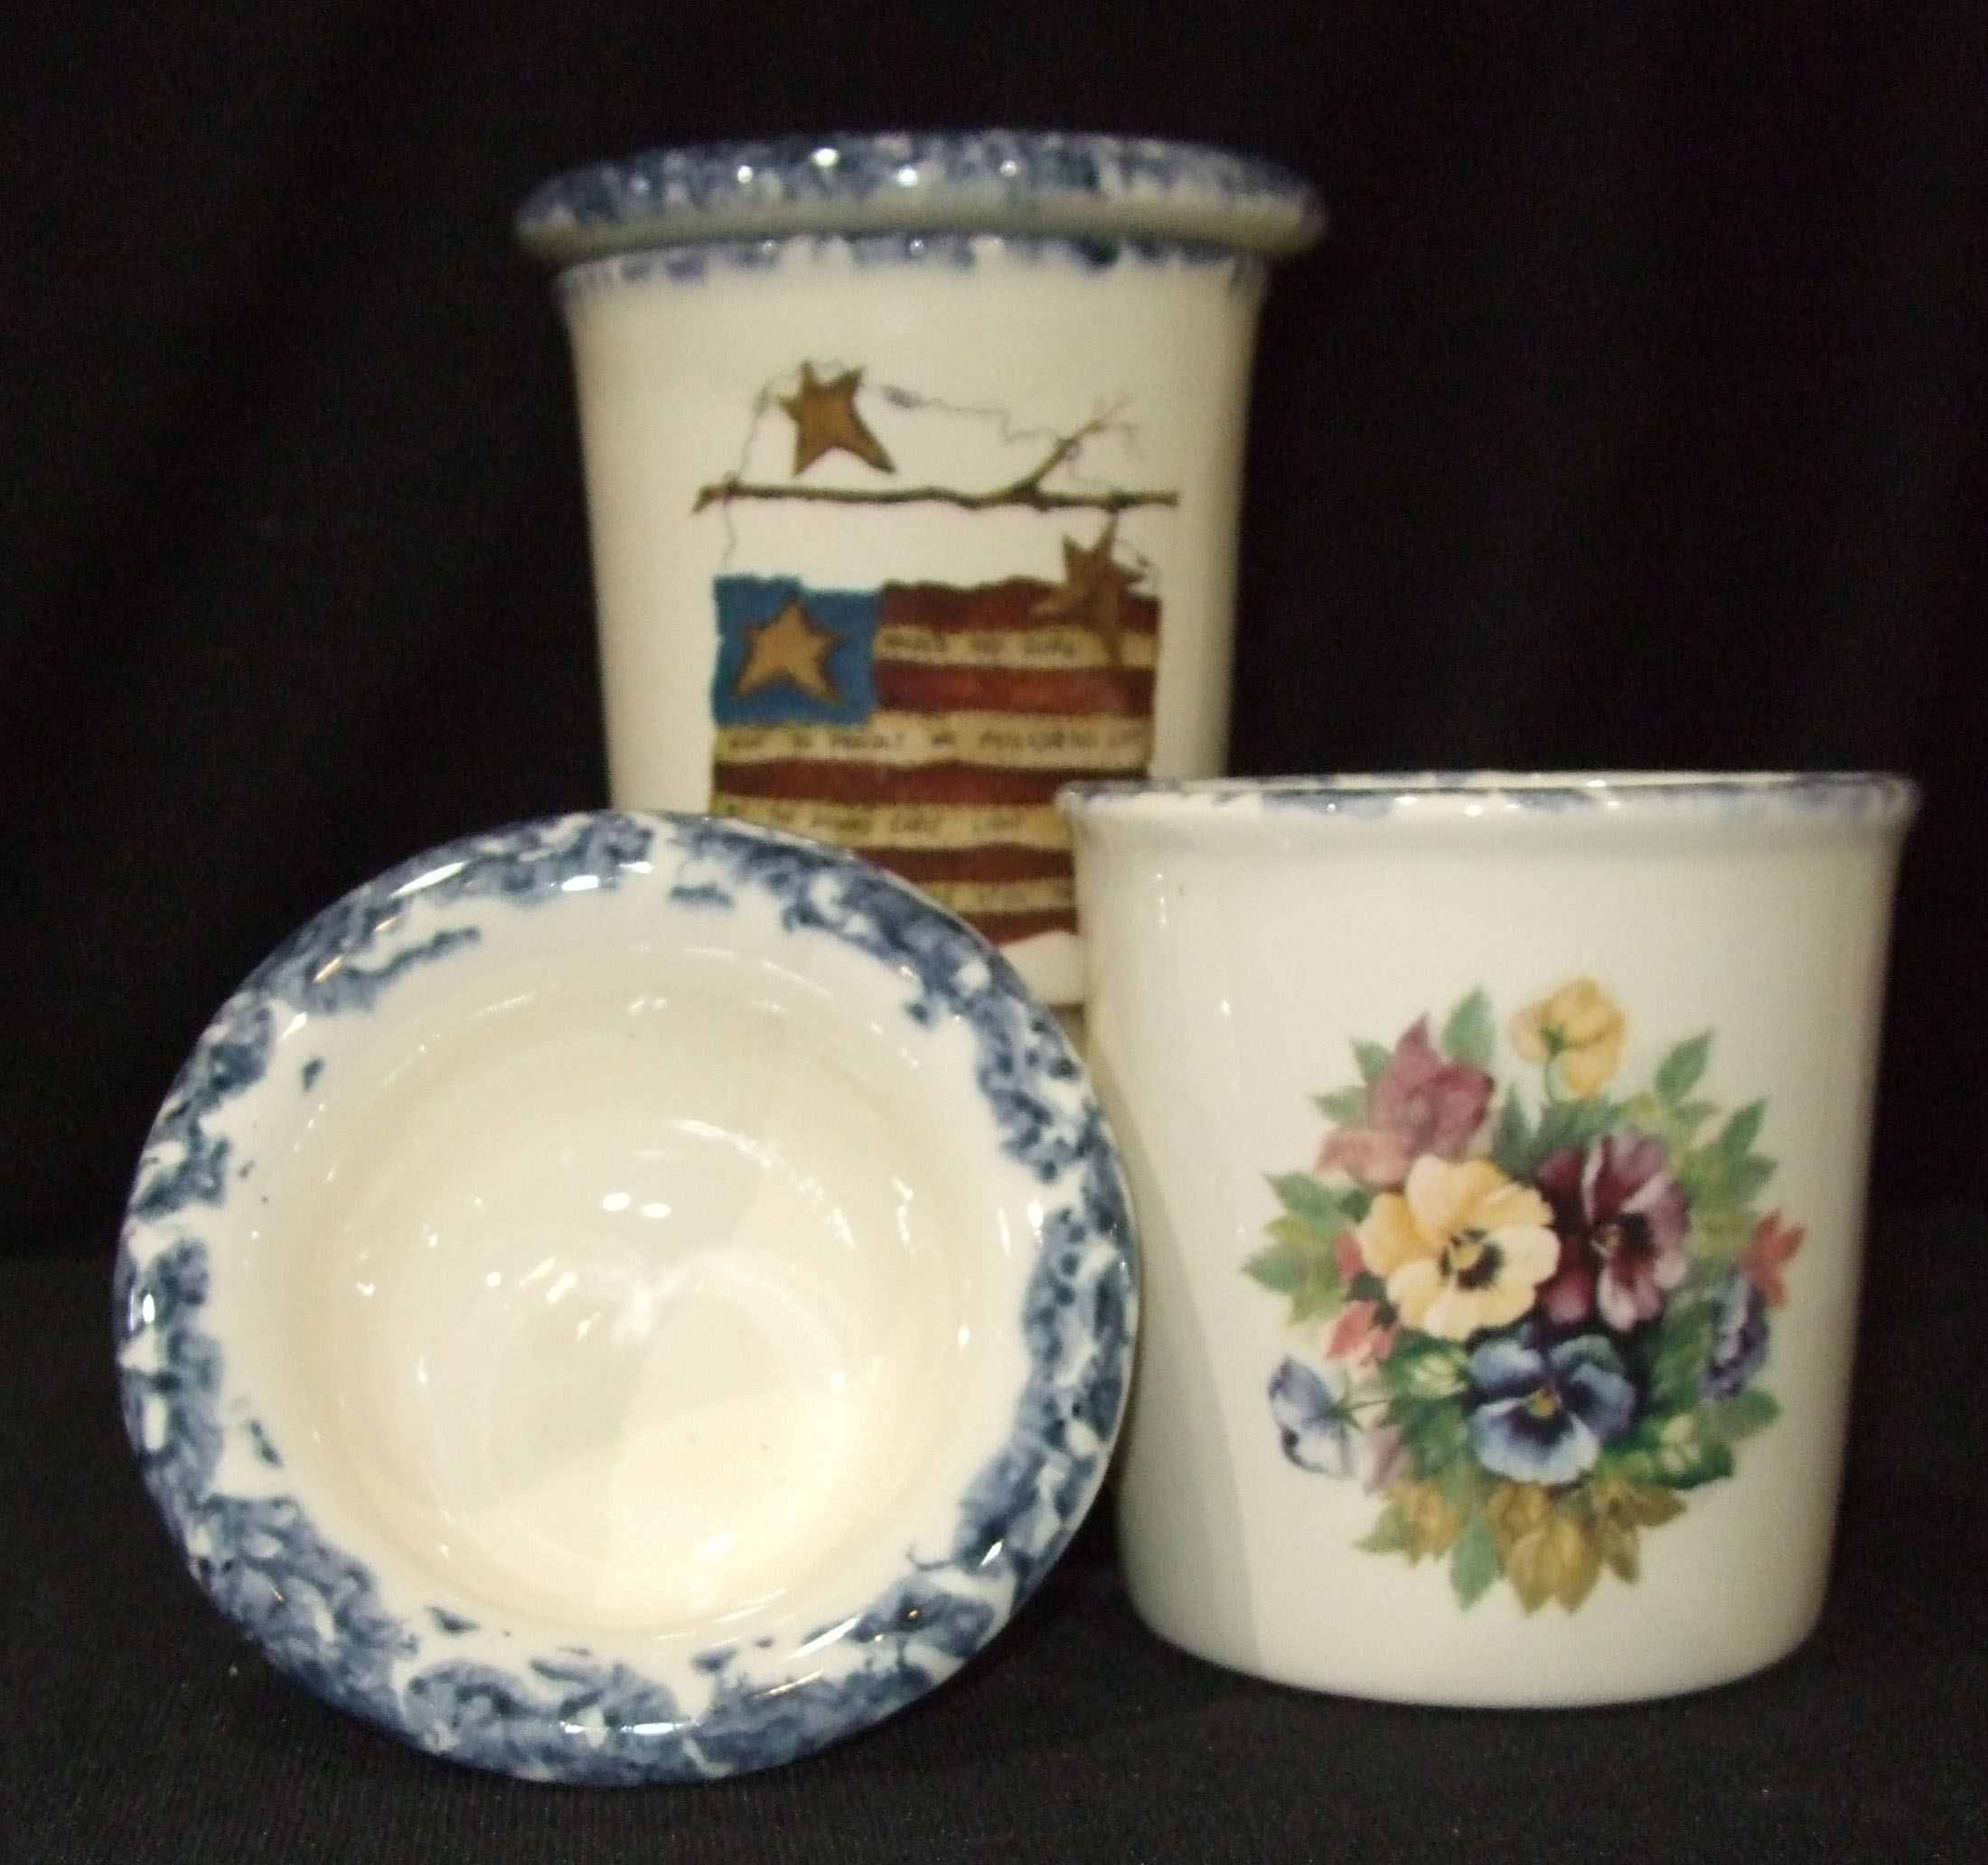 cool dip, dip it, container, pottery, custom, ceramics, affordable